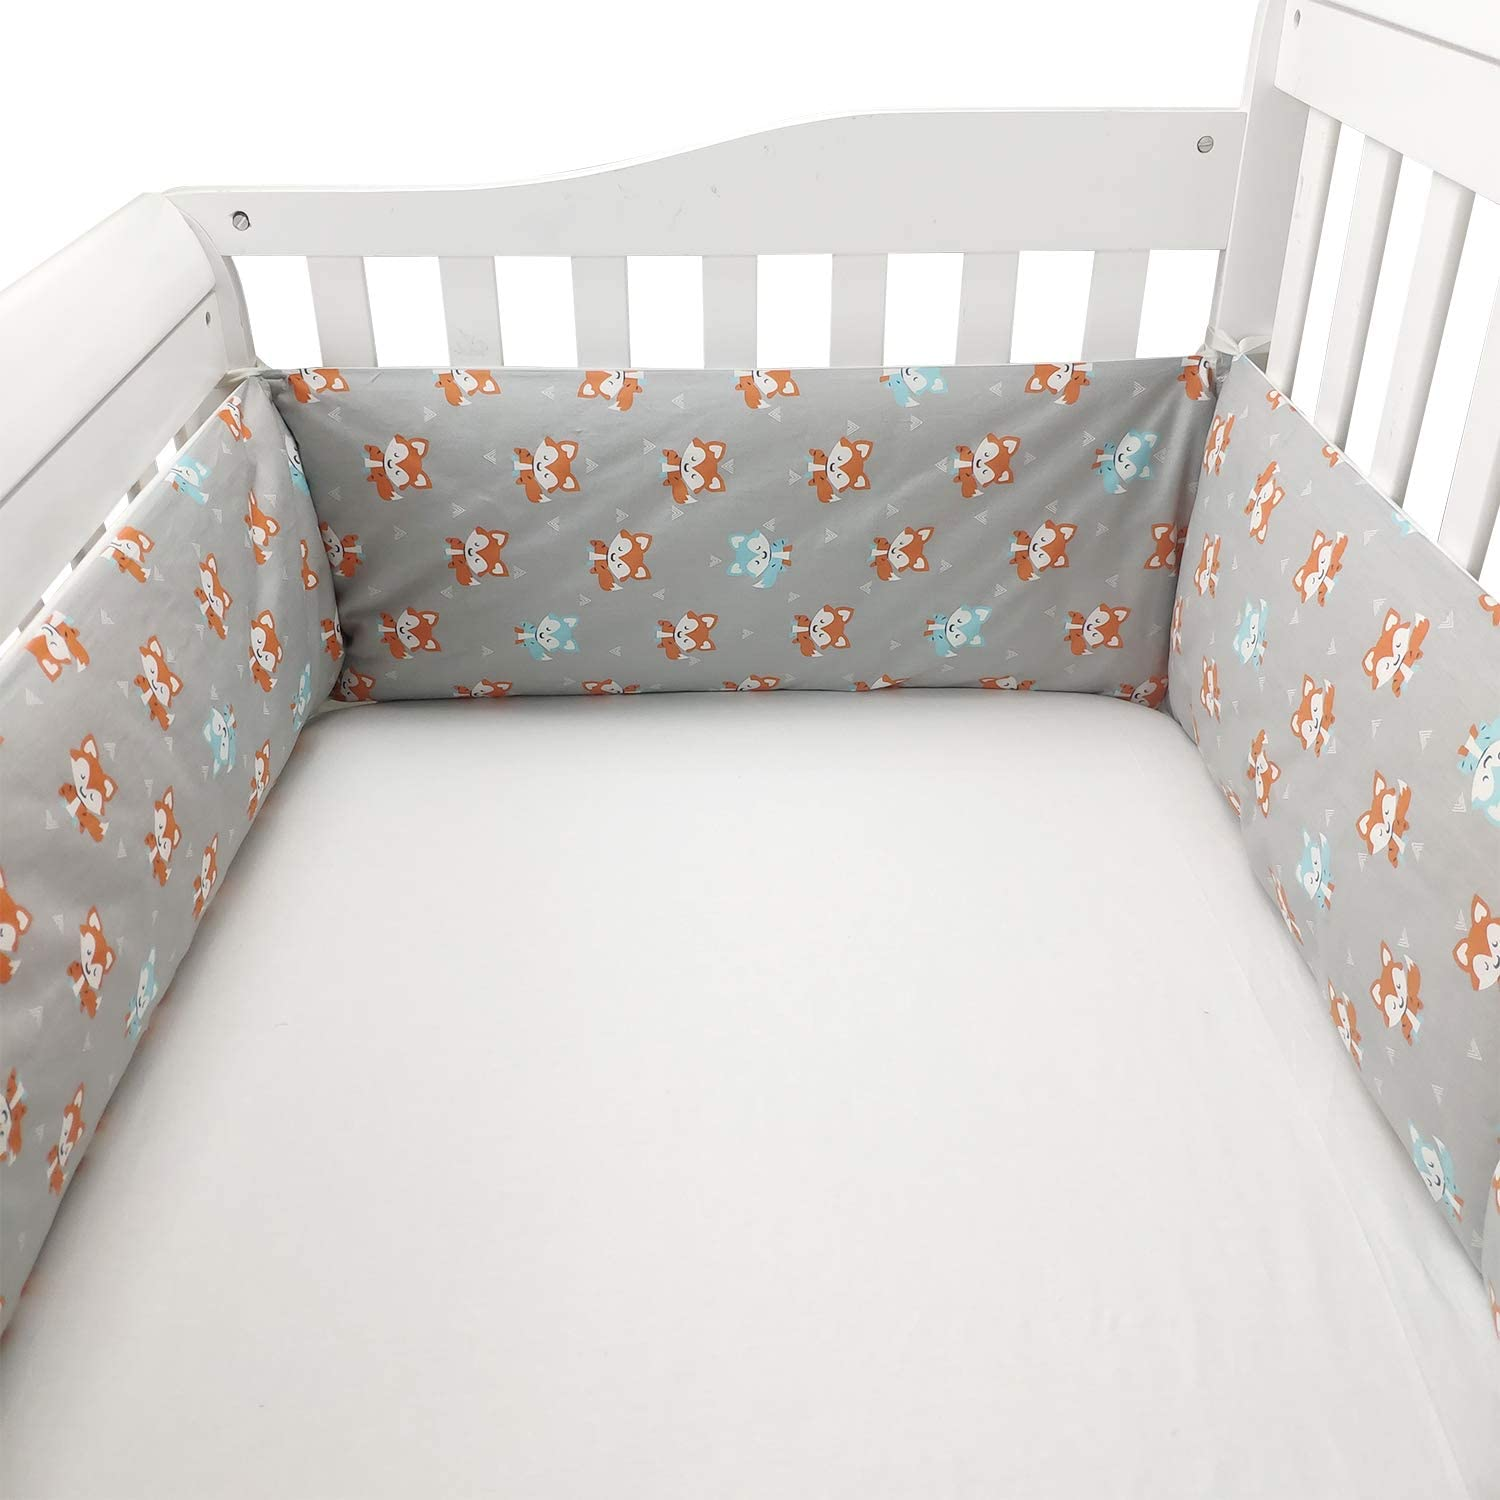 65 x 35 x 3.5 cm Moses Basket Foam Mattress Bassinet Baby PRAM Oval Fully Breathable Quilted